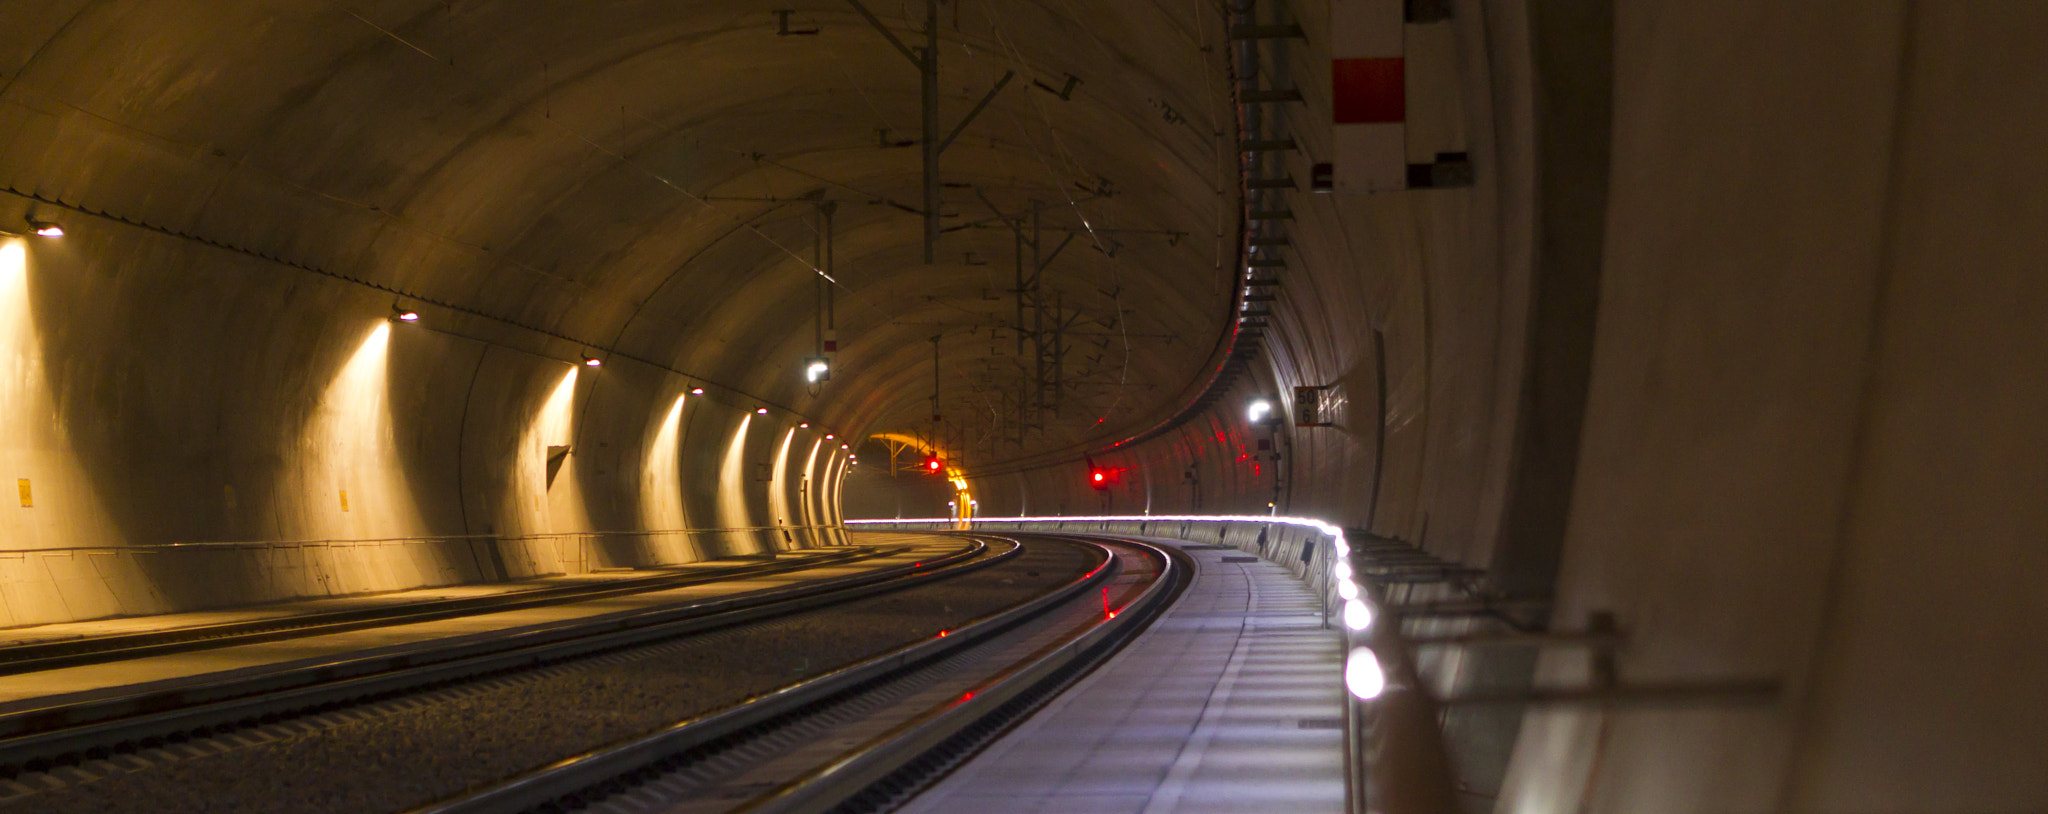 Photograph railway tunnel with signals by Martin Maguolo on 500px